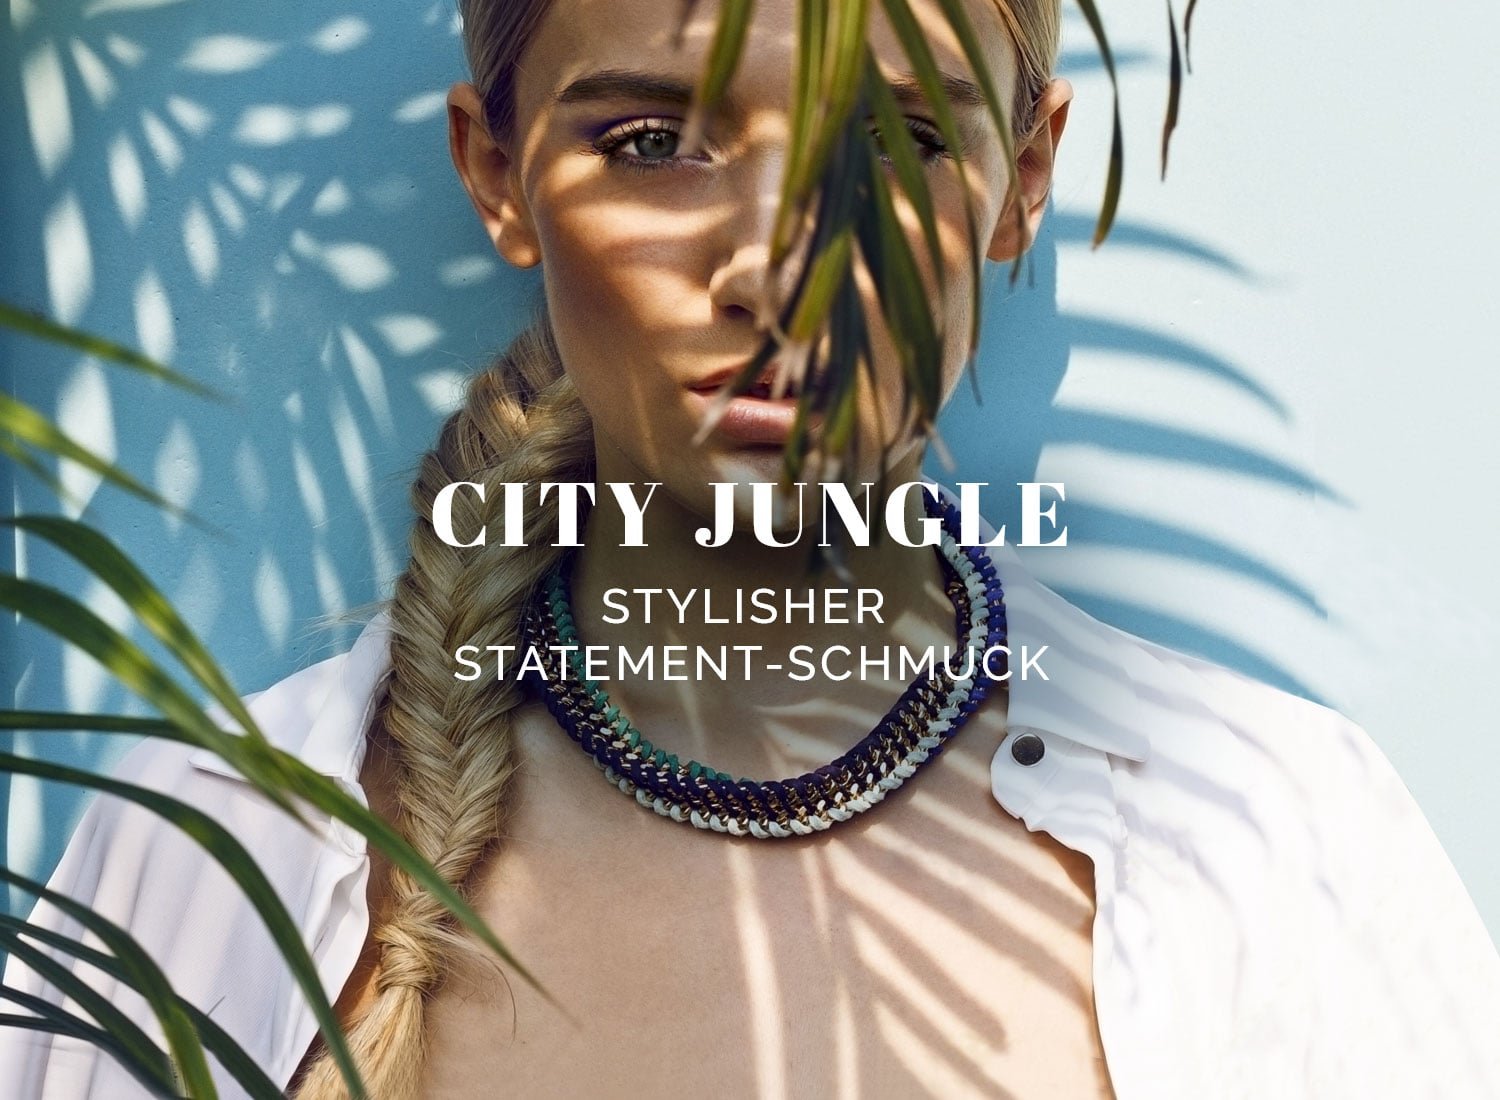 Statement-Schmuck